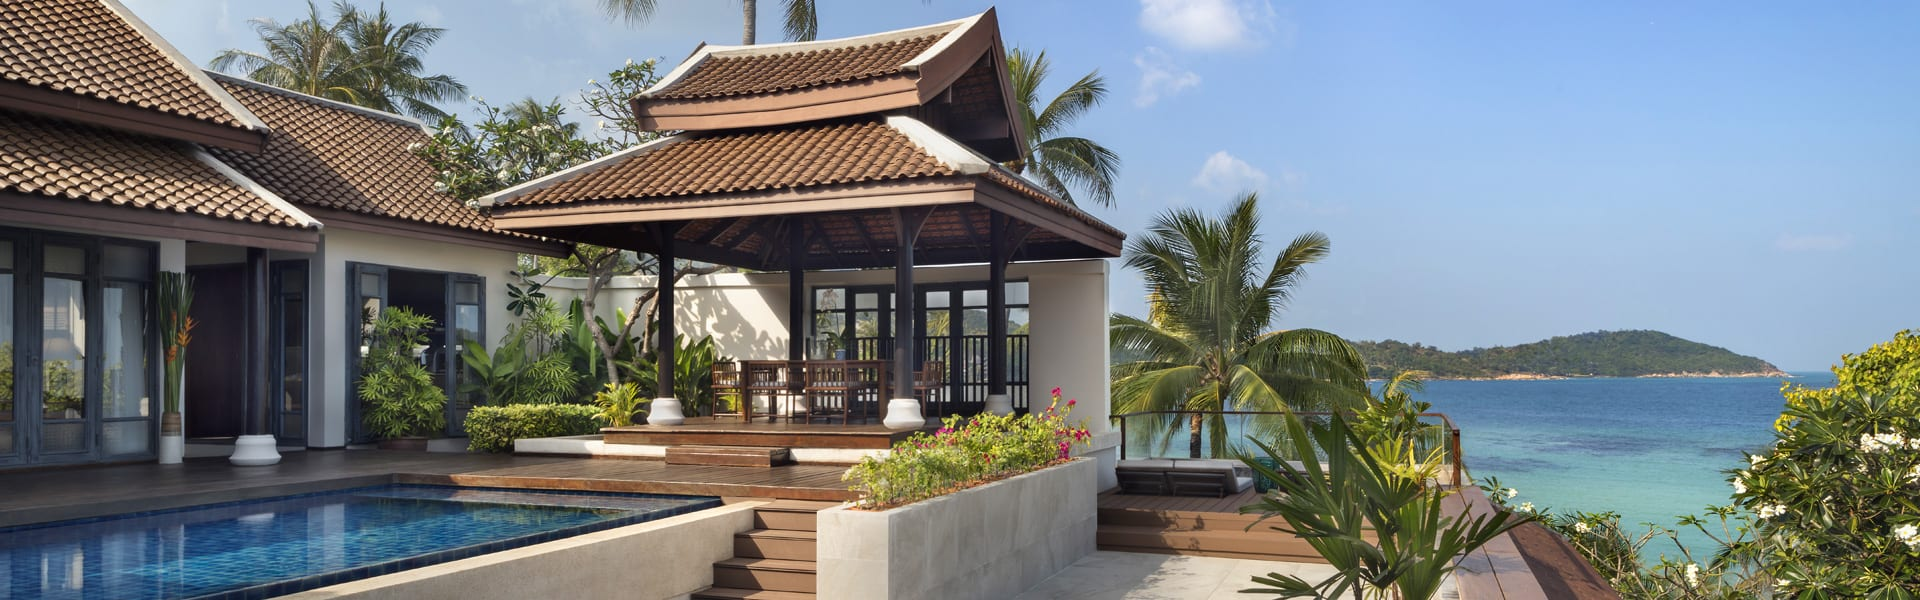 Anantara Peace Haven Tangalle Resort Garden Pool Villa Chaweng Beach Resorts | Accommodation At Anantara Lawana